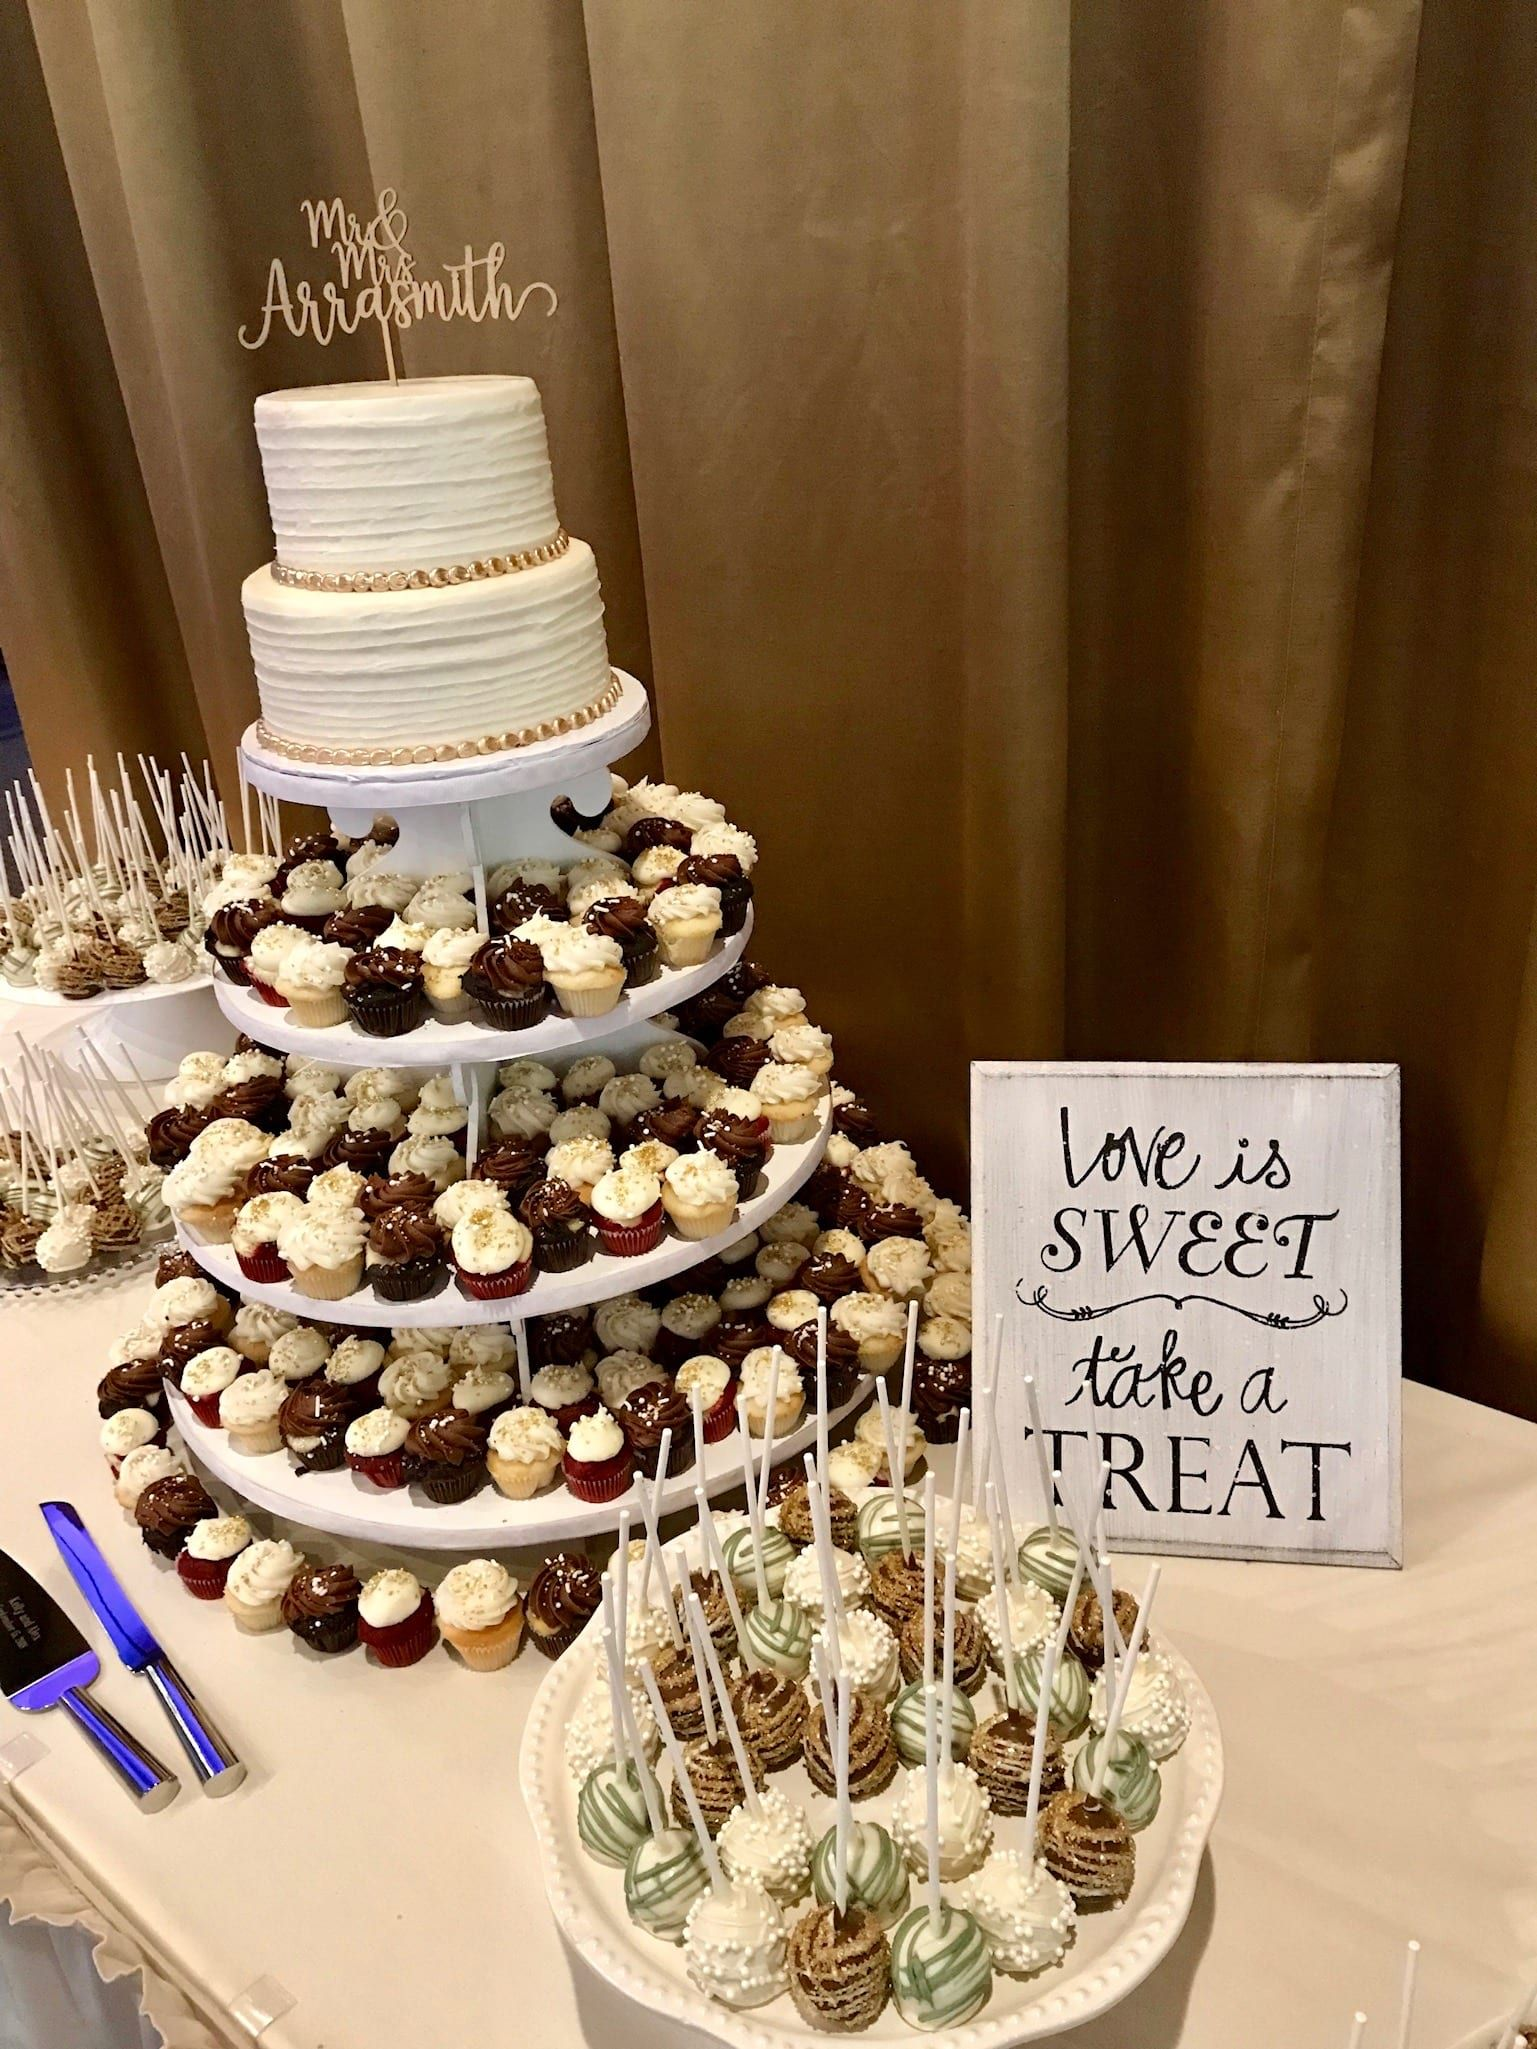 Wedding Dessert Table With Mini Cupcakes Cake Pops And A 2 Tier Cake 3 Sweet Girls In 2020 Wedding Cake Dessert Table Wedding Cupcake Table Dessert Display Wedding